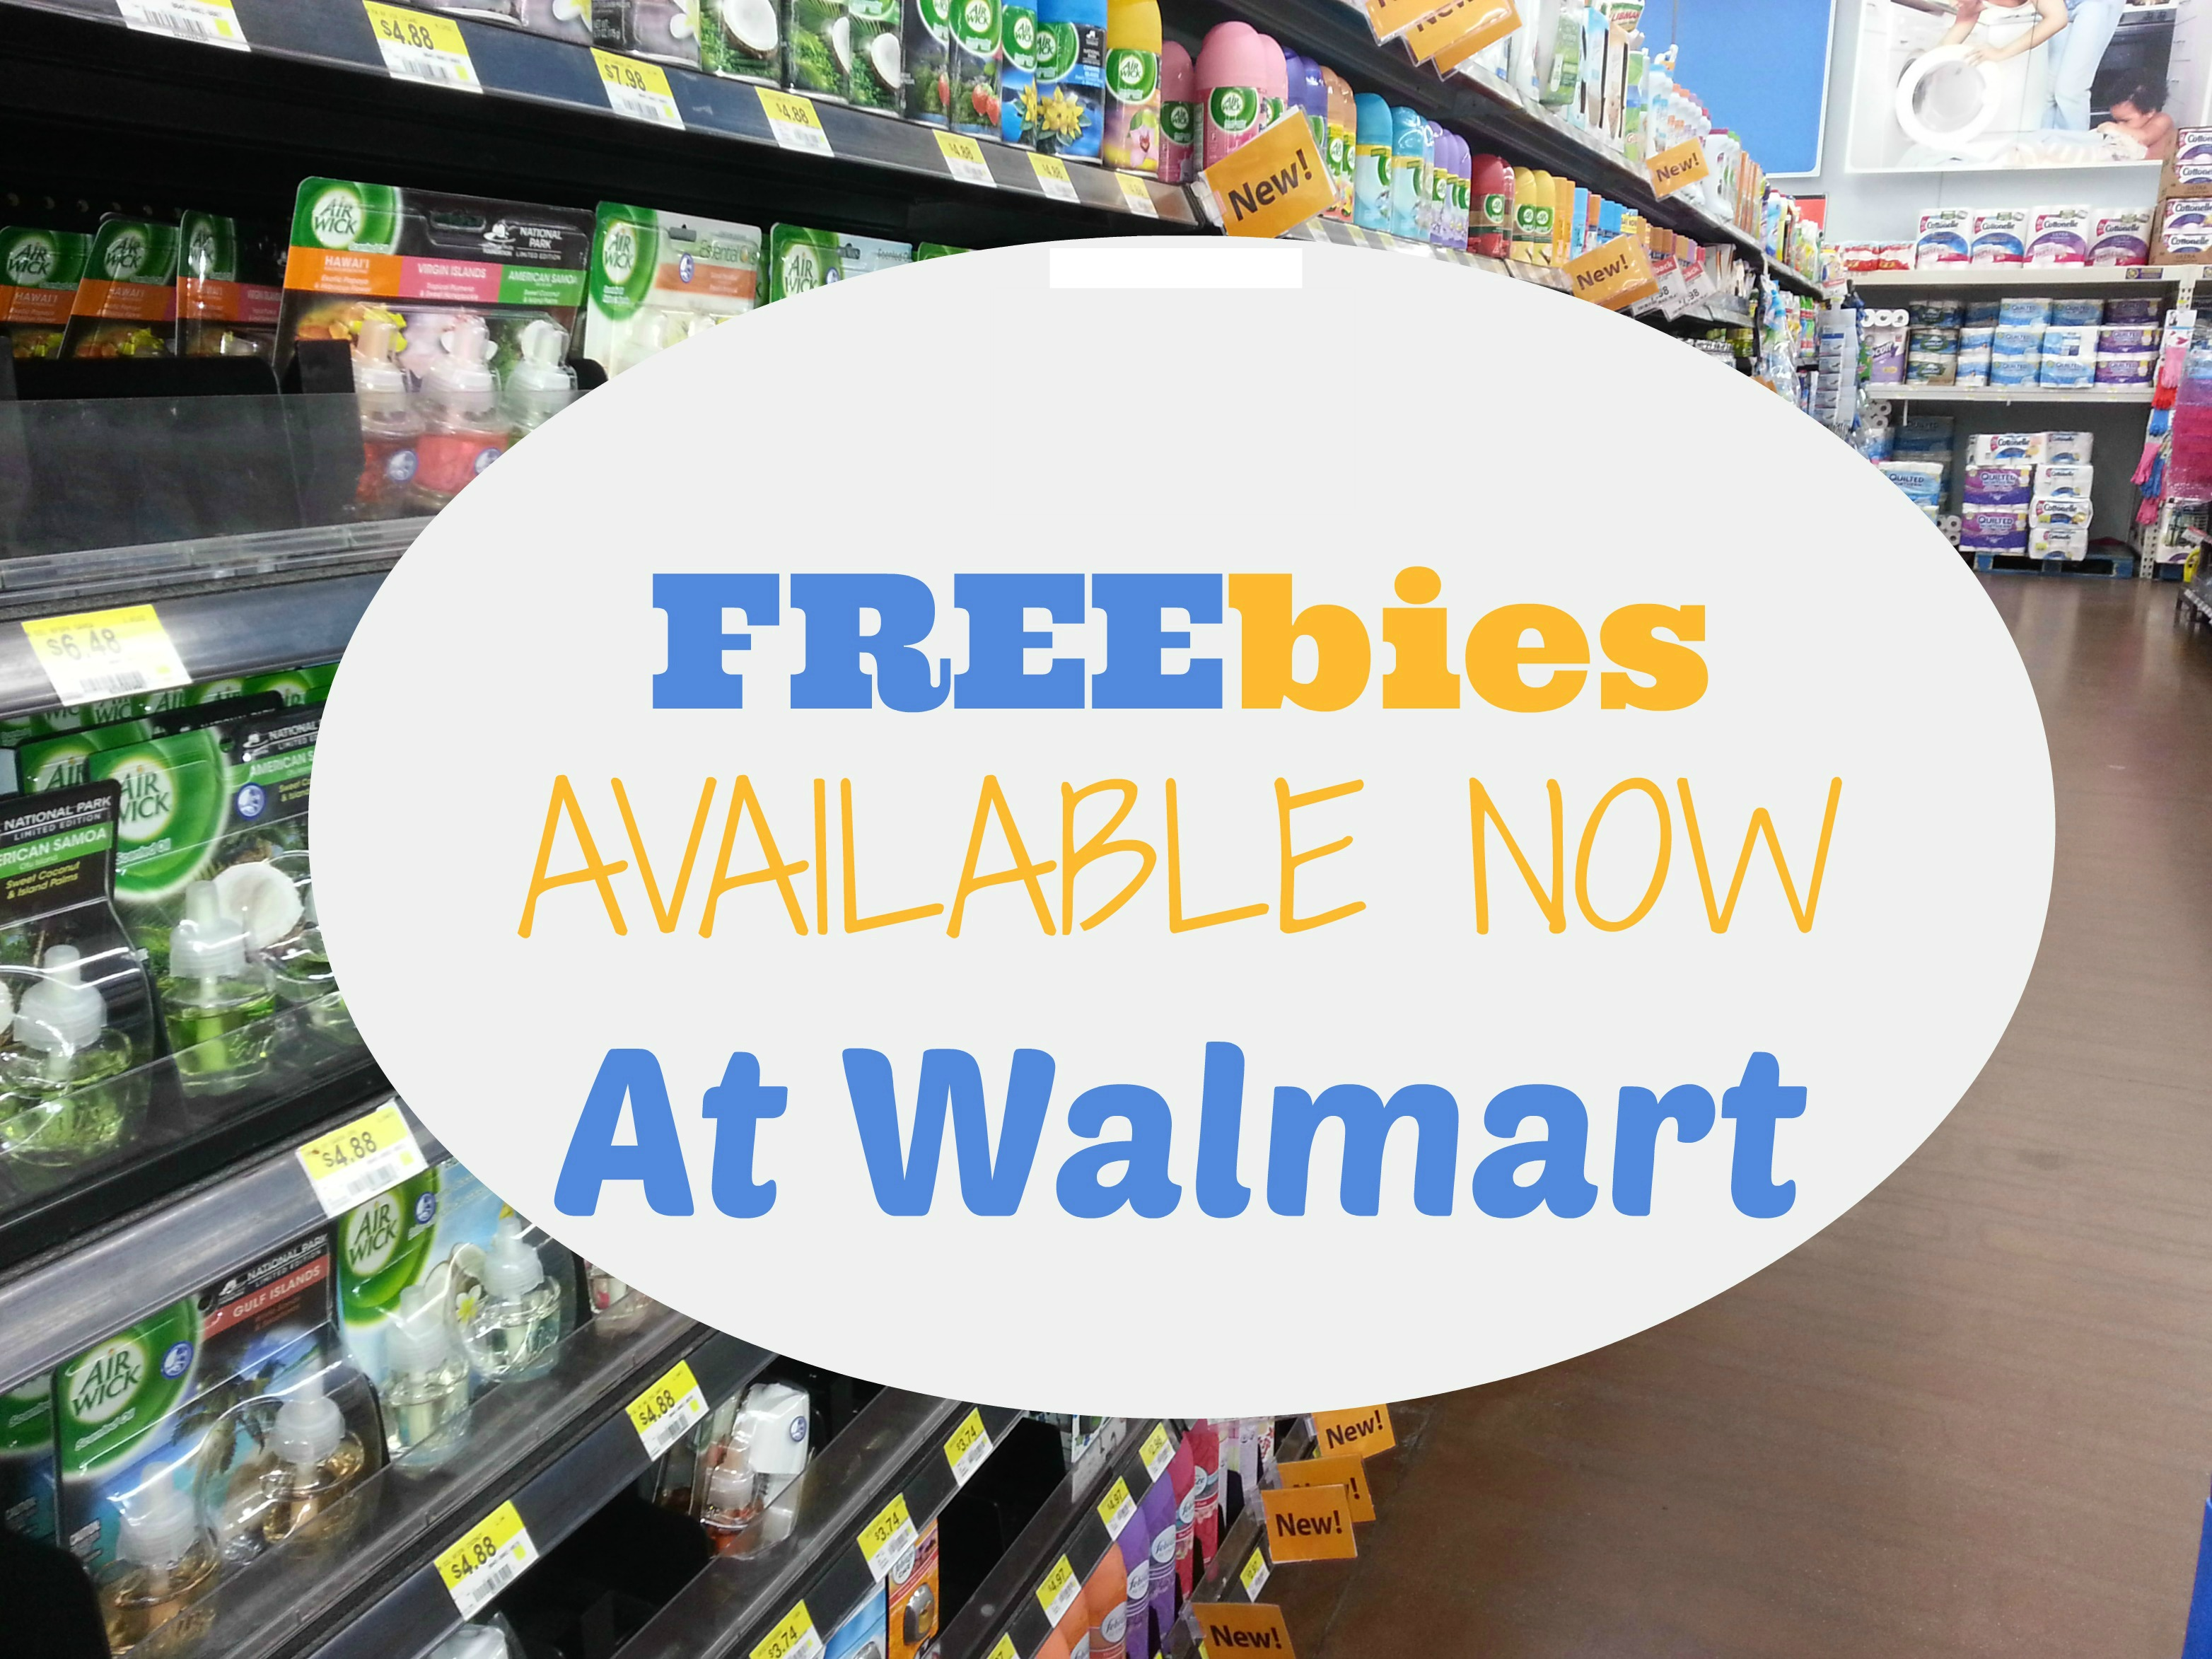 UPDATED: 12 FREE Products Available NOW at Walmart!